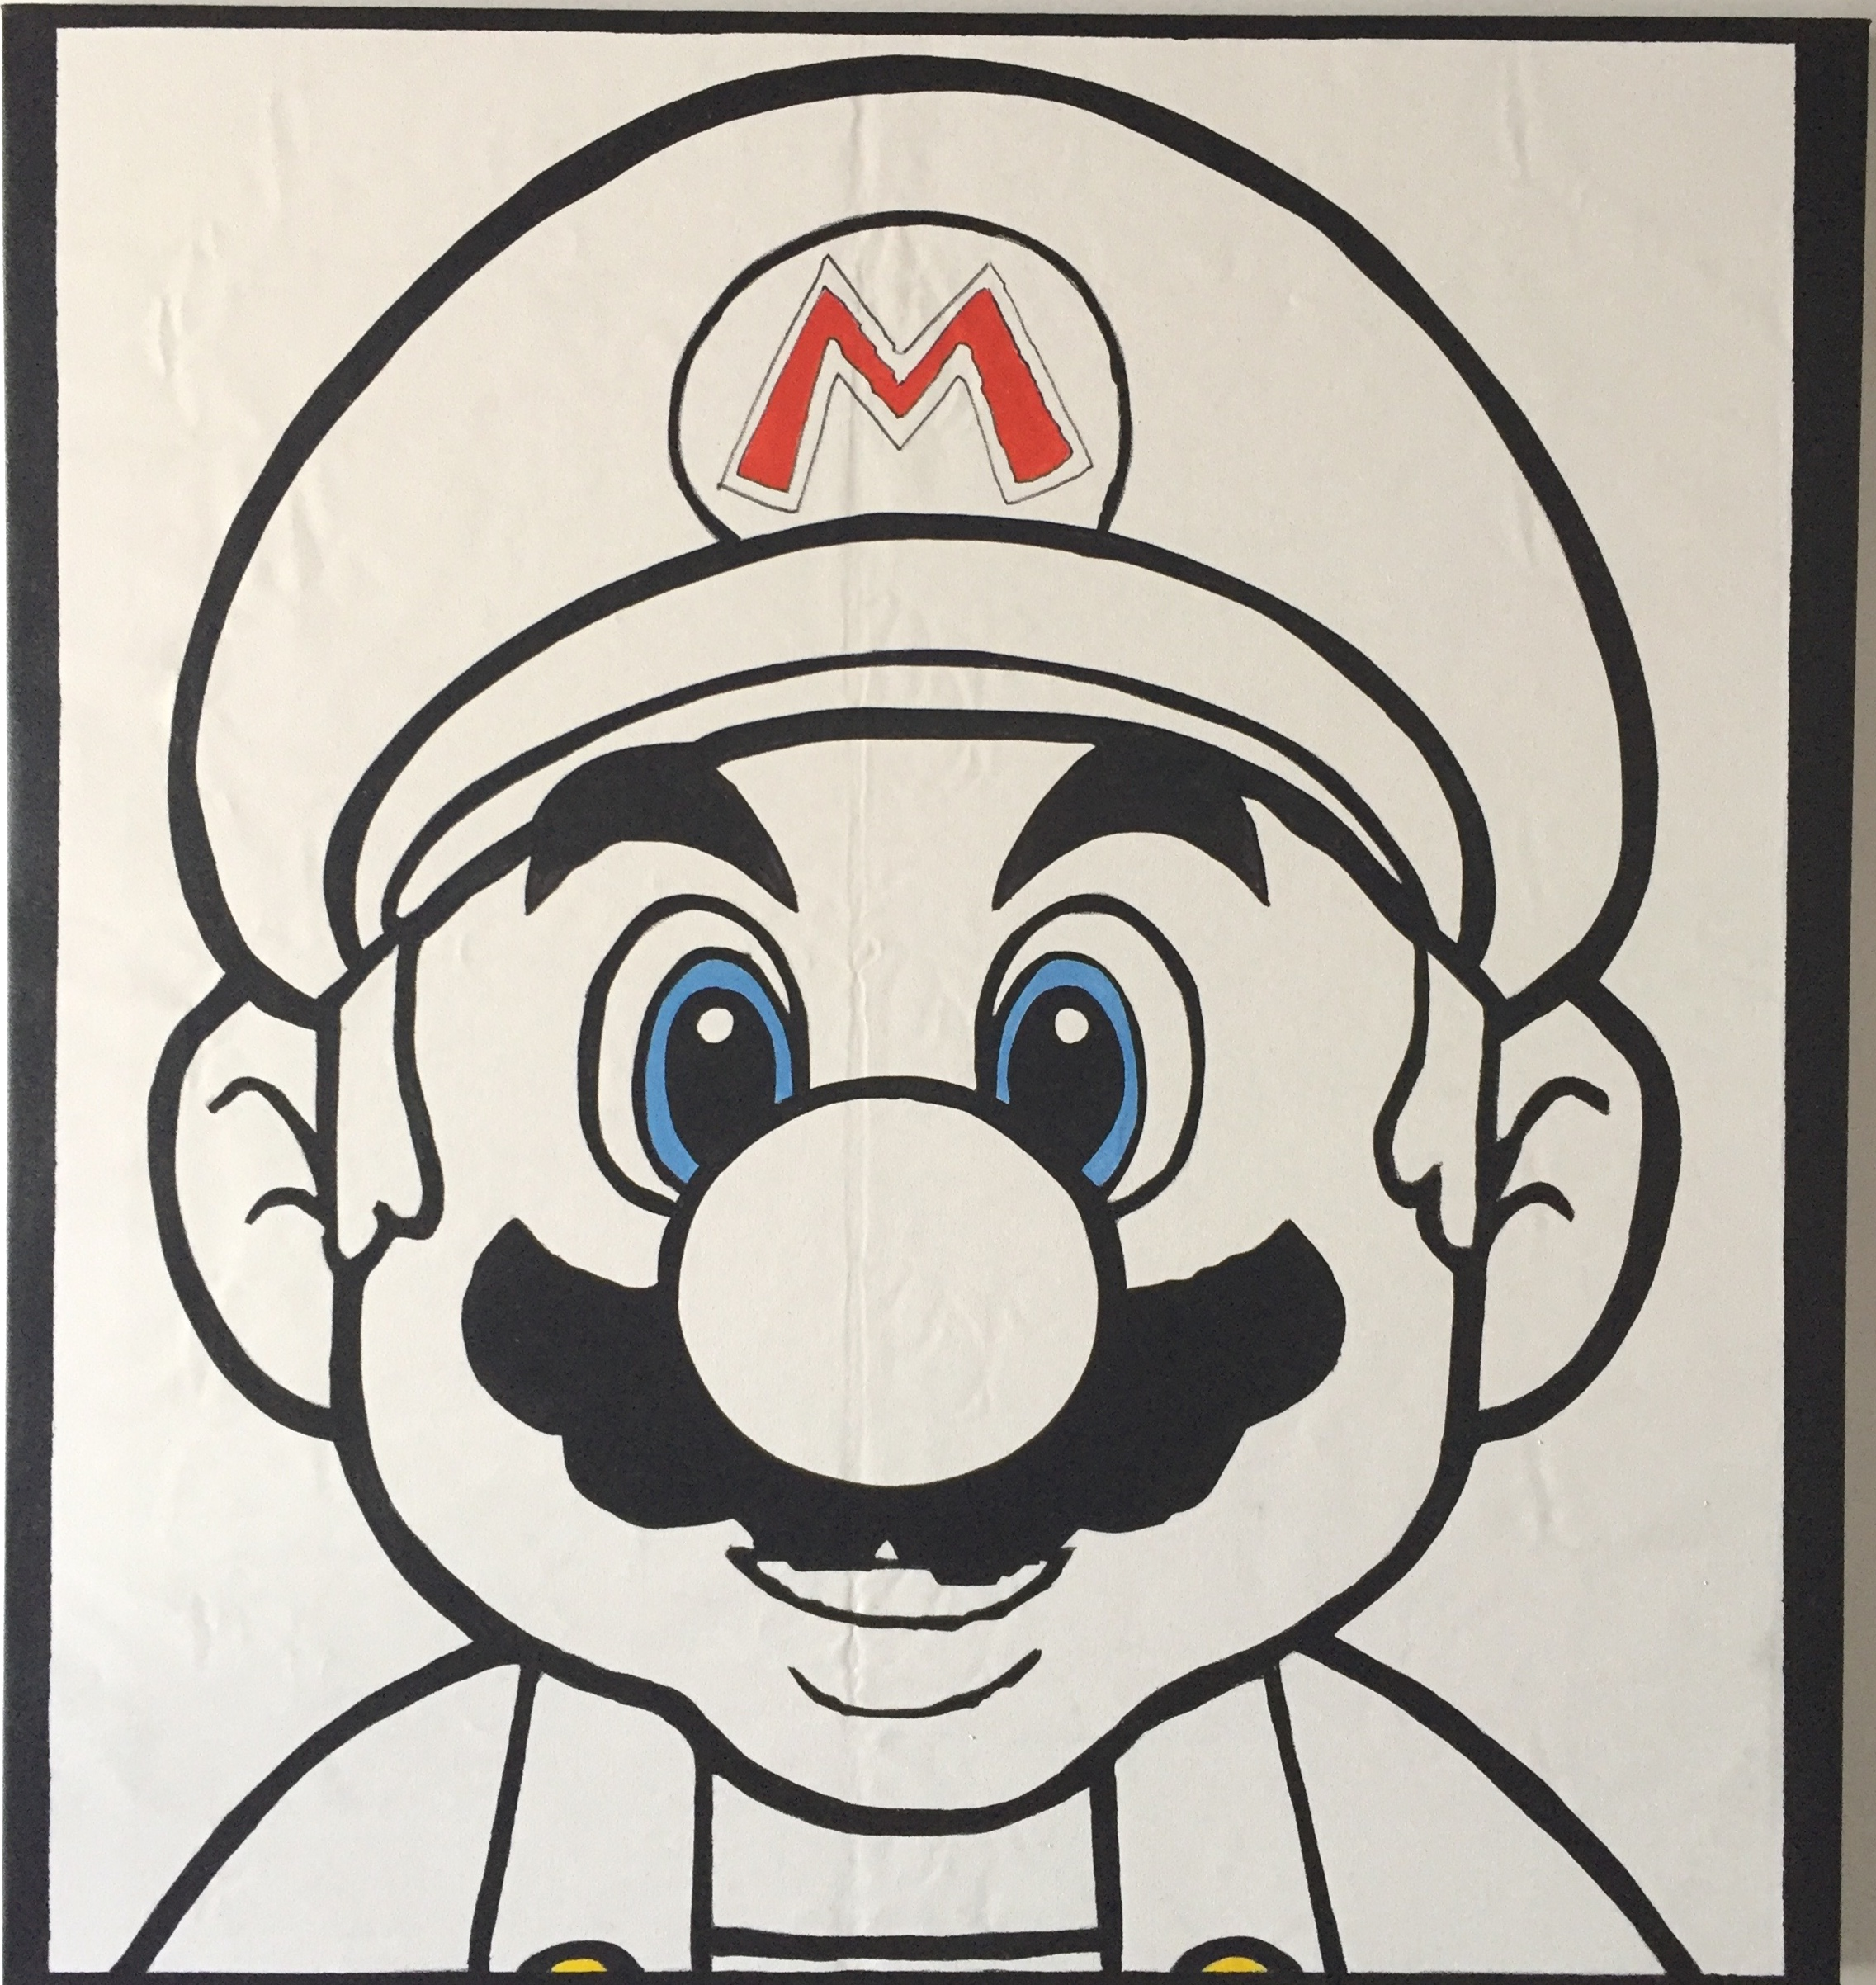 "Mario (Mugshot), 2018, acrylic on canvas, 56"" x 56"" inches"